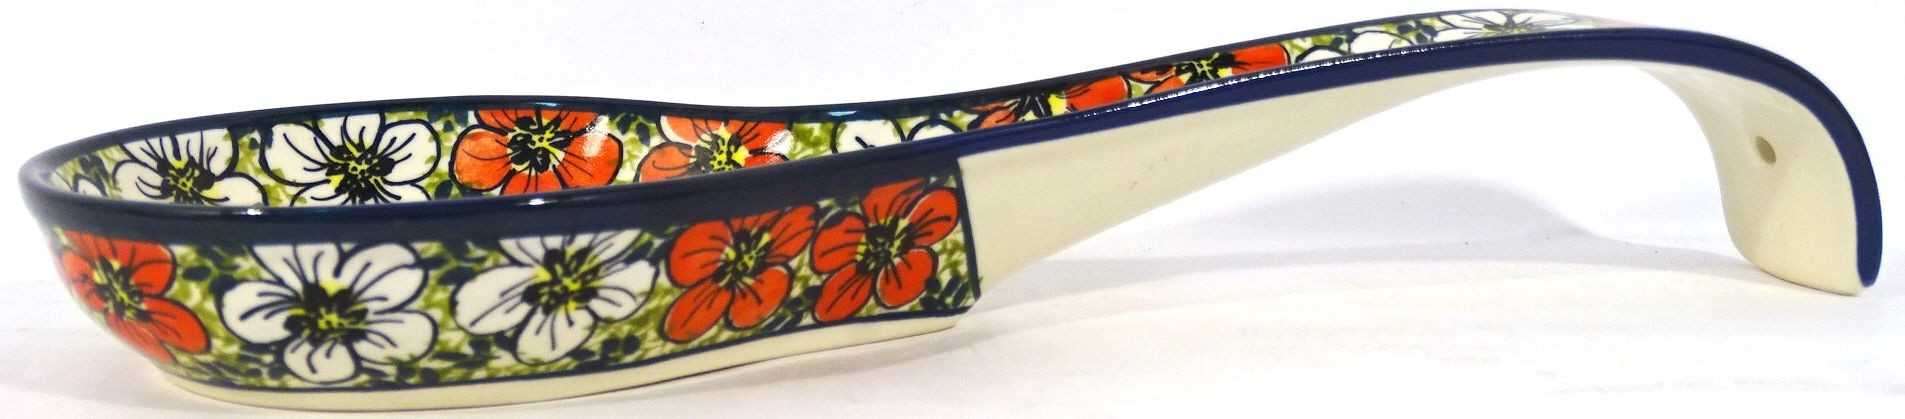 "Polish Pottery 12"" RED BACOPA Ladle - Spoon Rest 